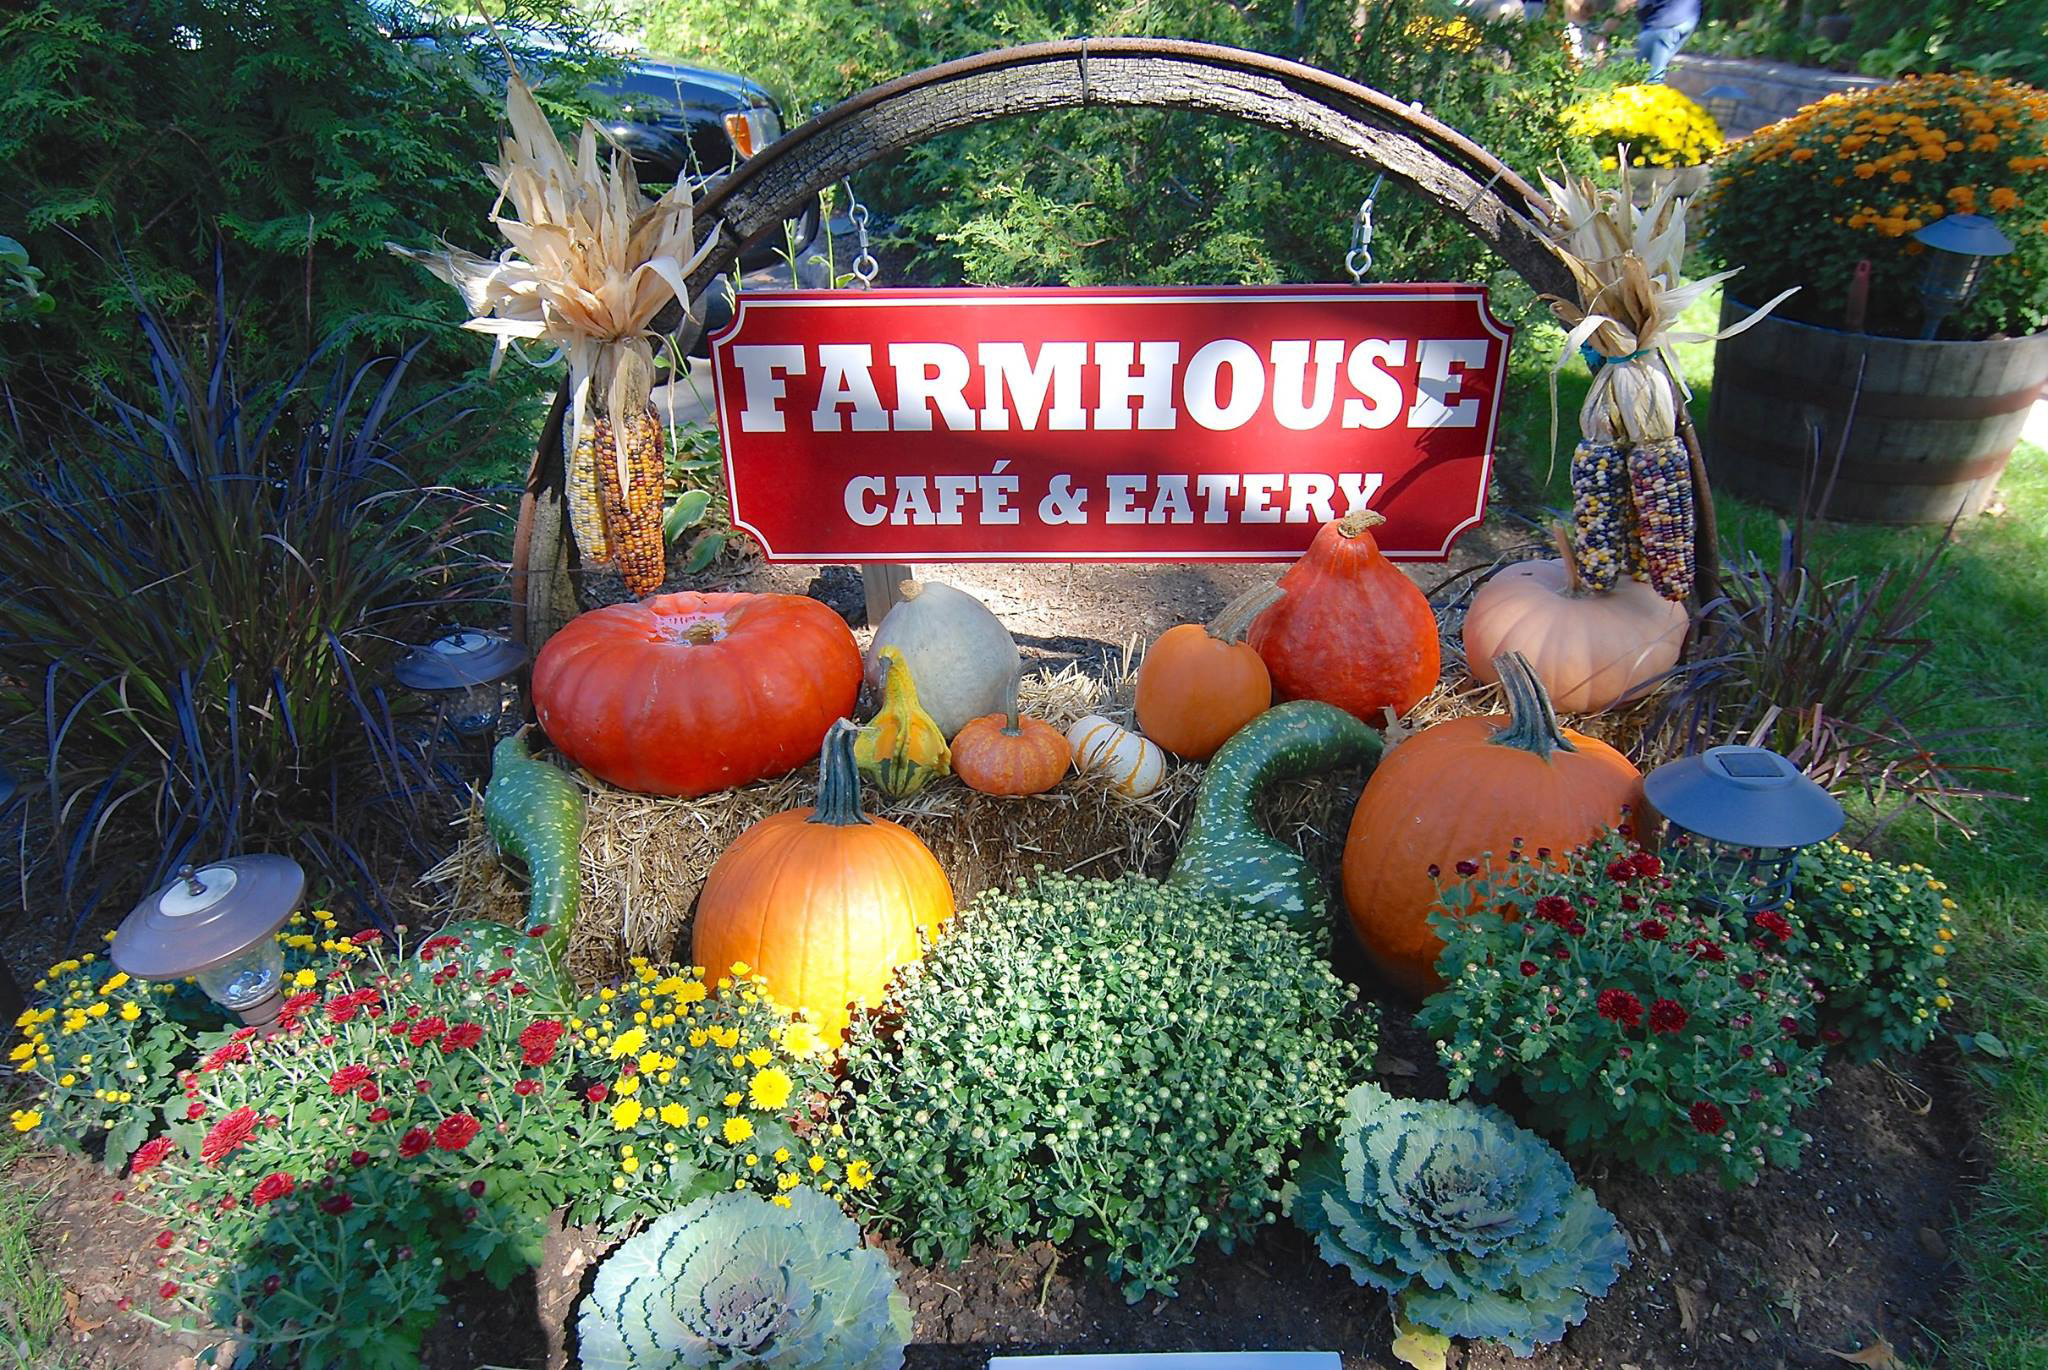 Farmhouse Cafe Eatery Cresskill Nj Coffee Breakfast Lunch Or Great Any Time